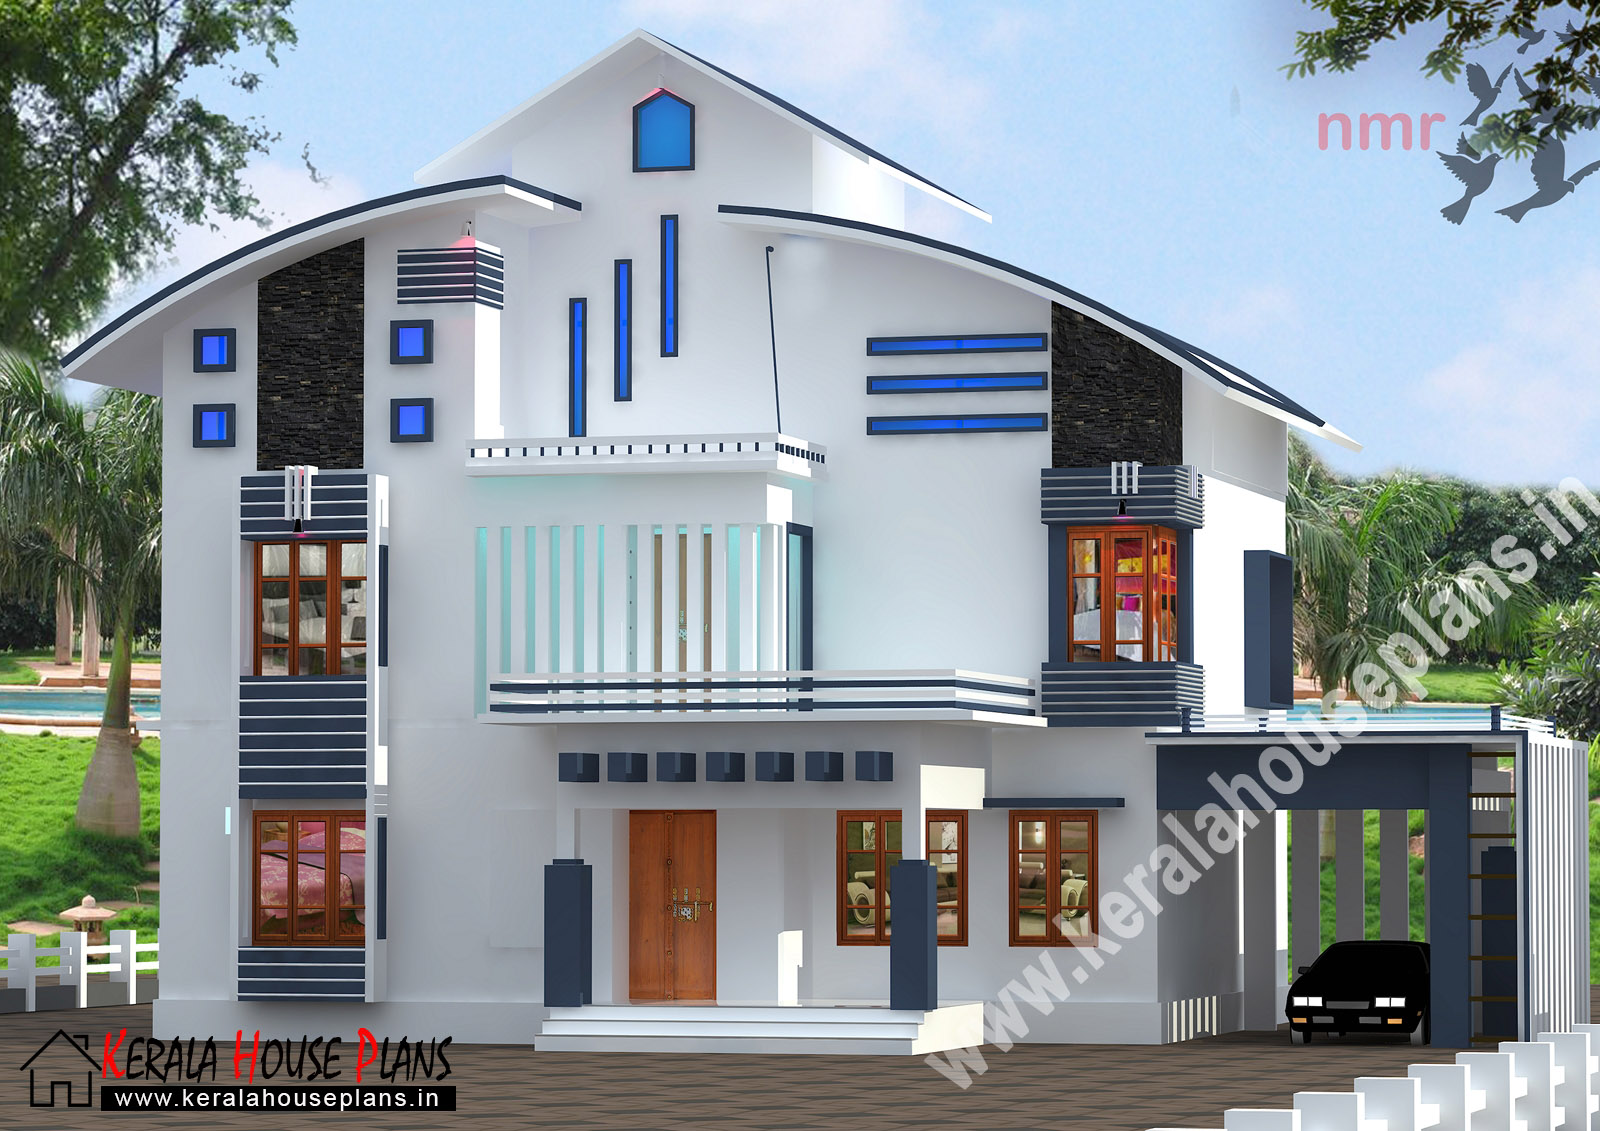 Kerala house plans and designs for House plans and designs